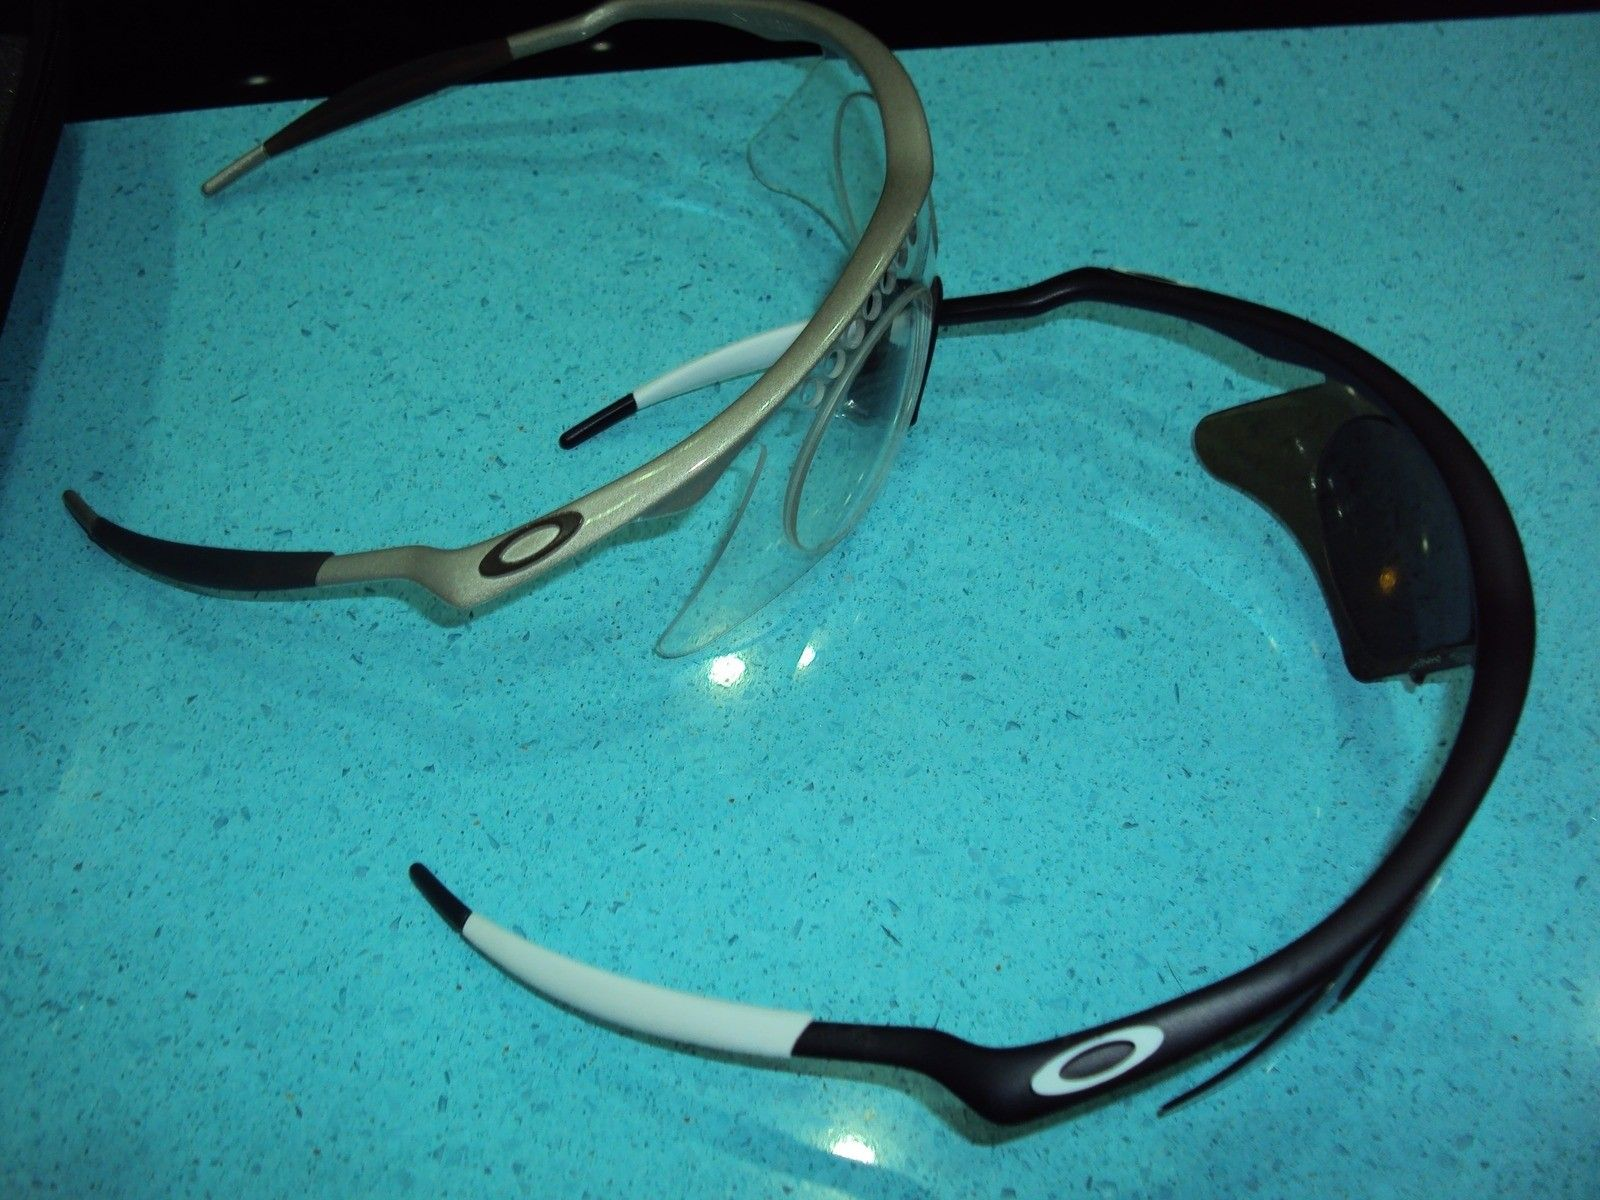 Info On These M Frames Please - 1358880915026.jpg